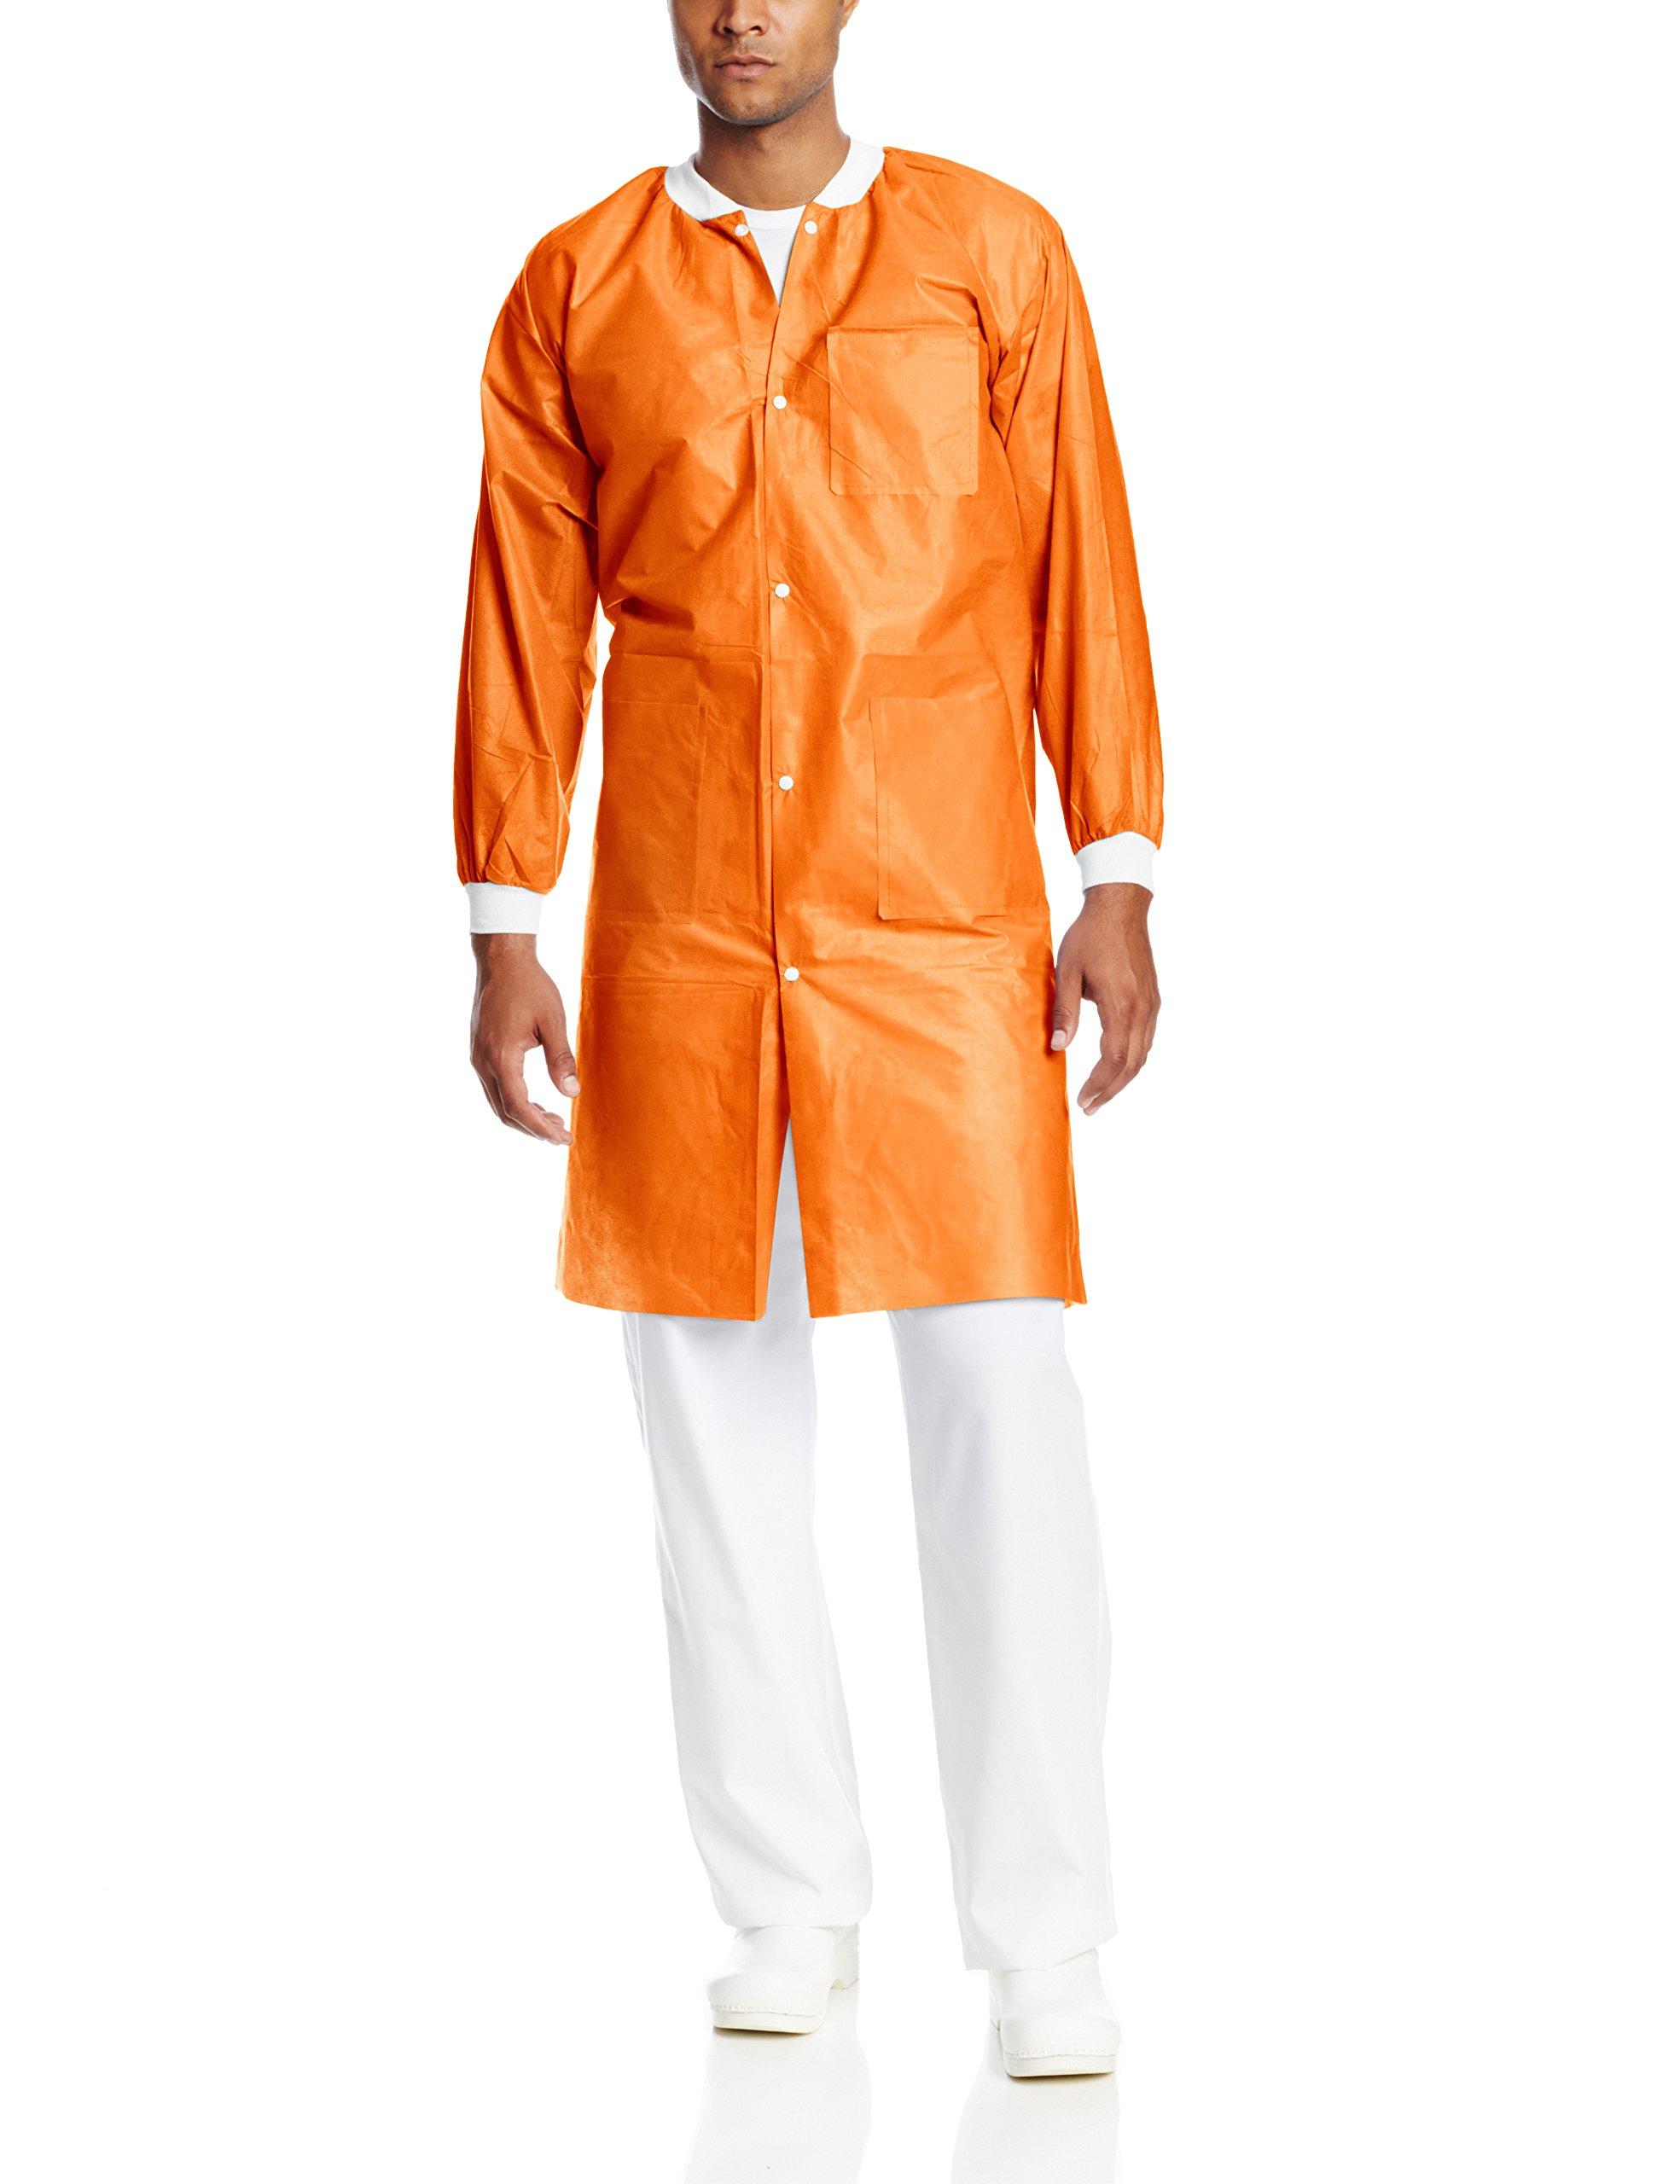 ValuMax 3660ORS Extra-Safe, Wrinkle-Free, Noble Looking Disposable SMS Knee Length Lab Coat, Orange, S, Pack of 10